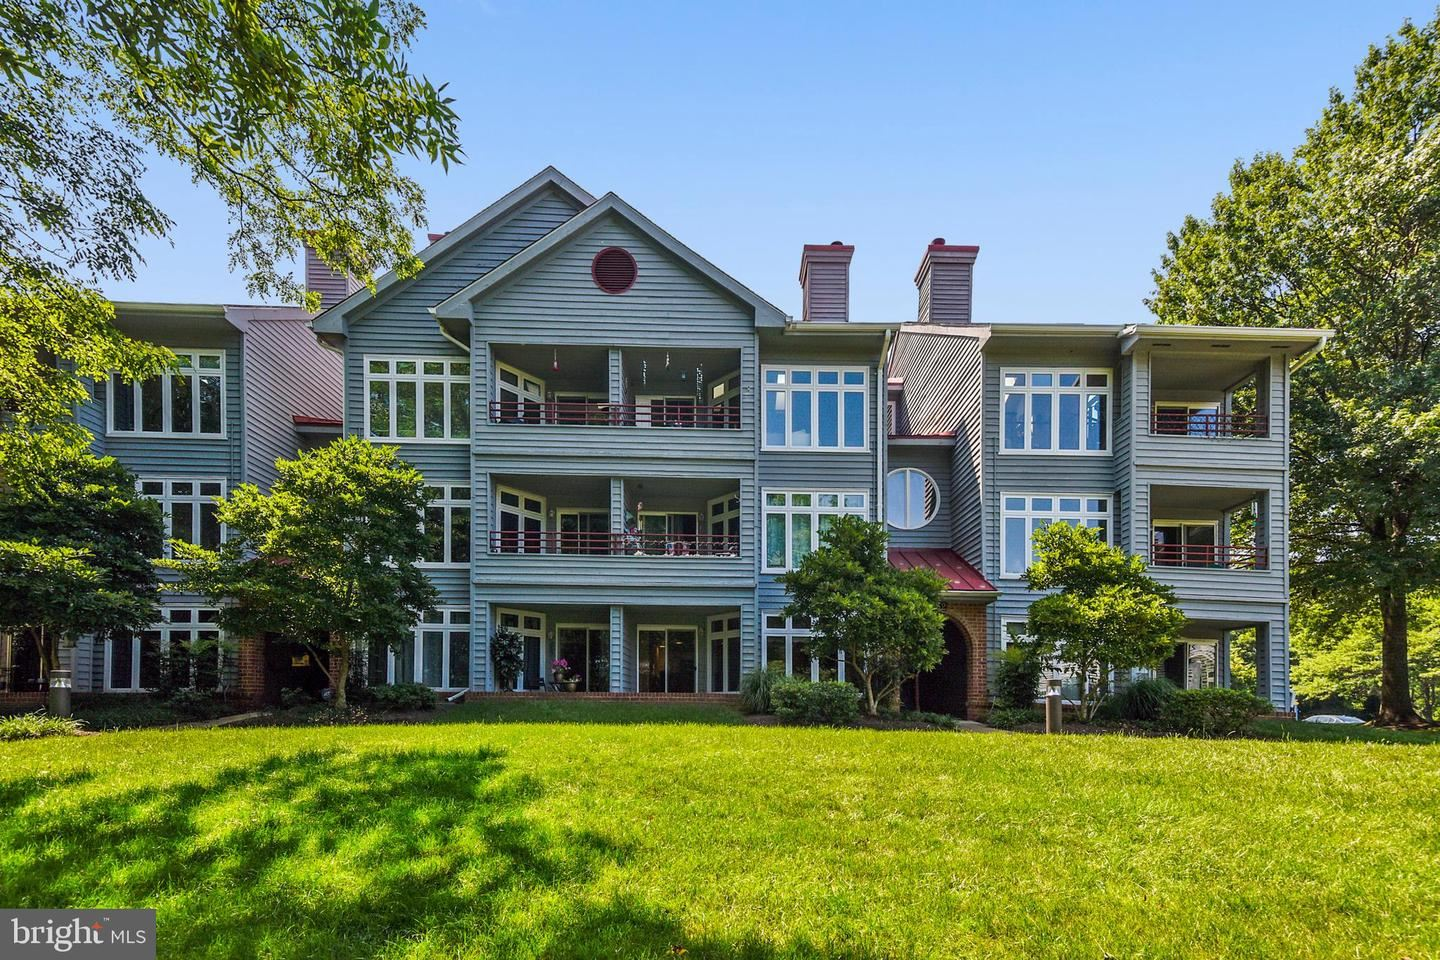 1142 PINEMONT PLACE #3A, Annapolis, MD 21403 - MLS#: MDAA463542